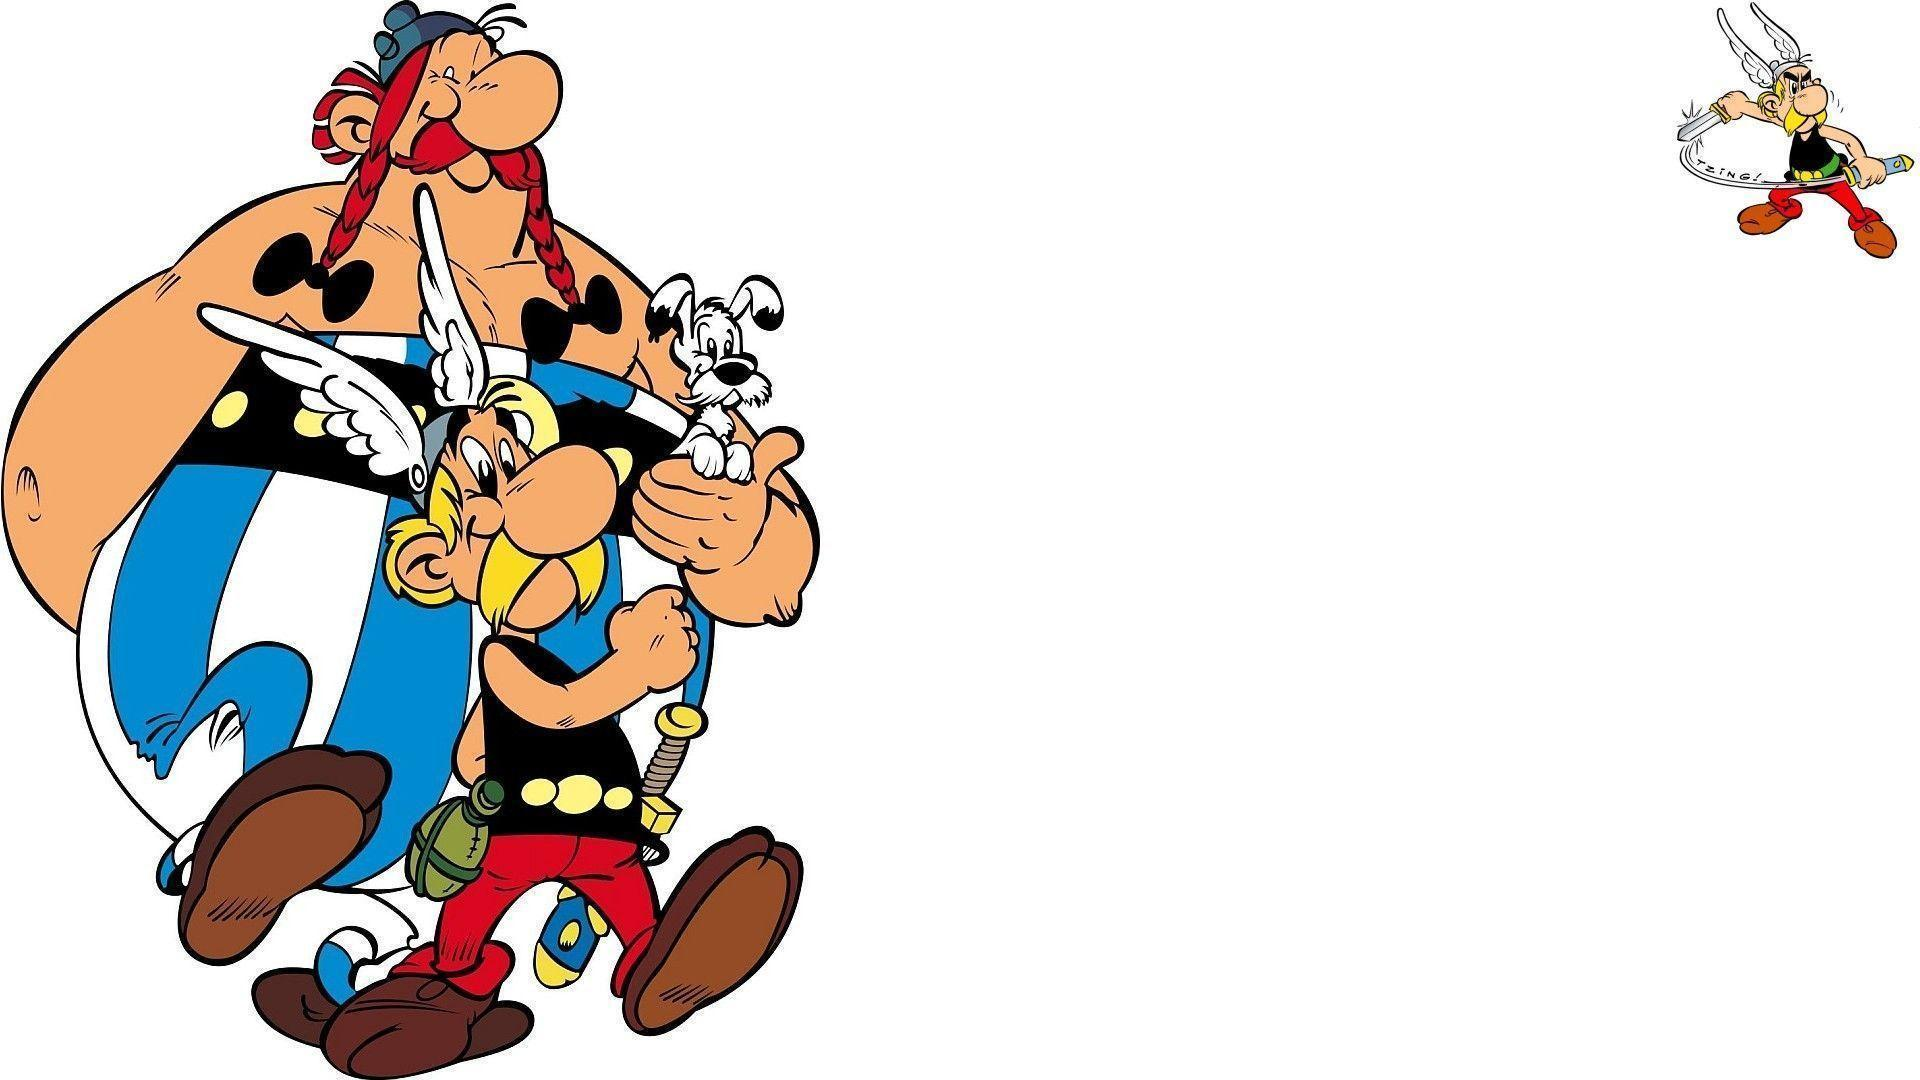 Citaten Asterix En Obelix : Asterix wallpapers wallpaper cave